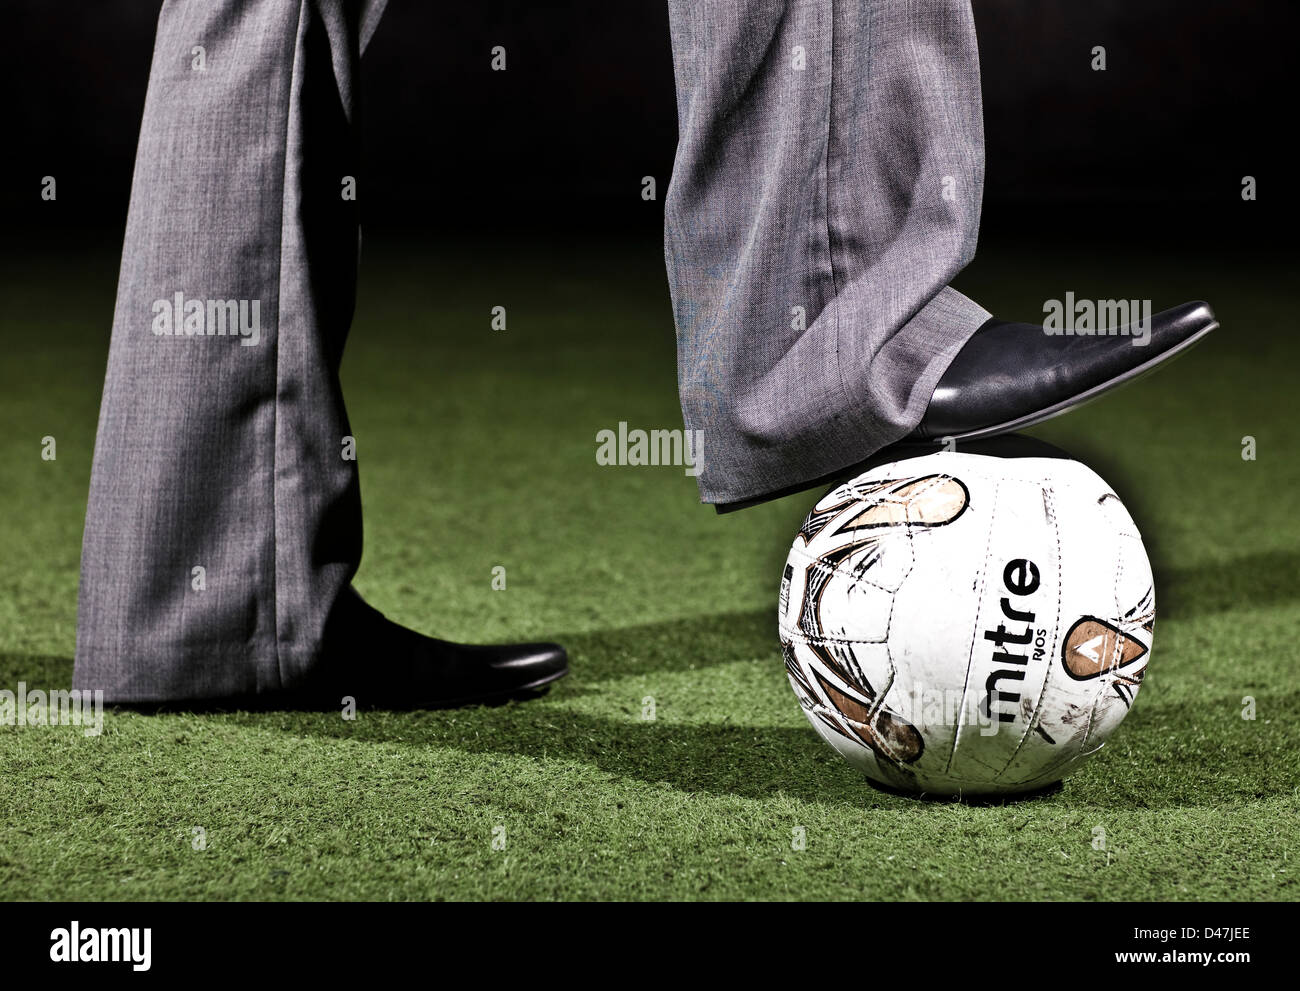 Footballer resting foot on ball - Stock Image